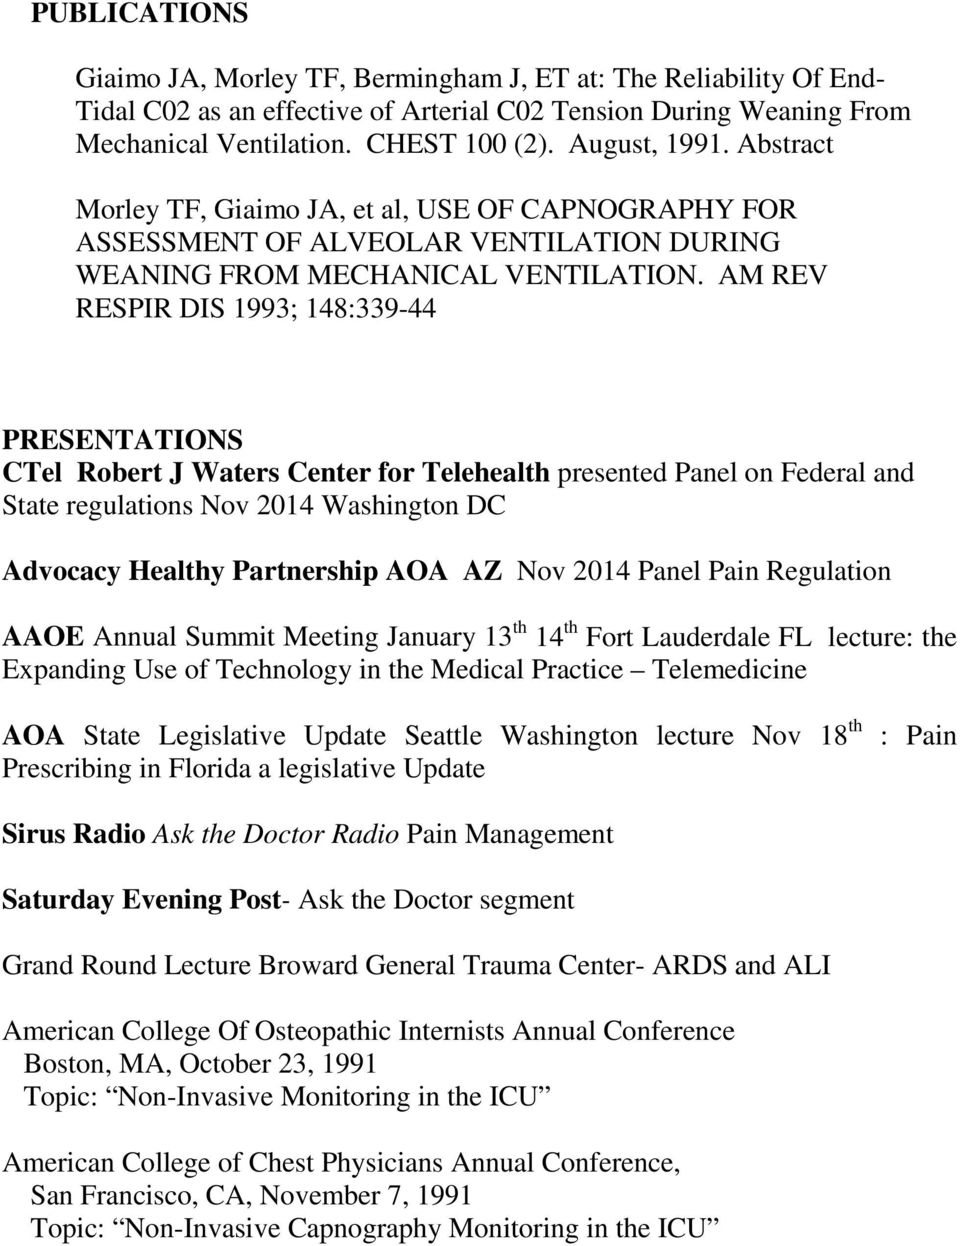 AM REV RESPIR DIS 1993; 148:339-44 PRESENTATIONS CTel Robert J Waters Center for Telehealth presented Panel on Federal and State regulations Nov 2014 Washington DC Advocacy Healthy Partnership AOA AZ